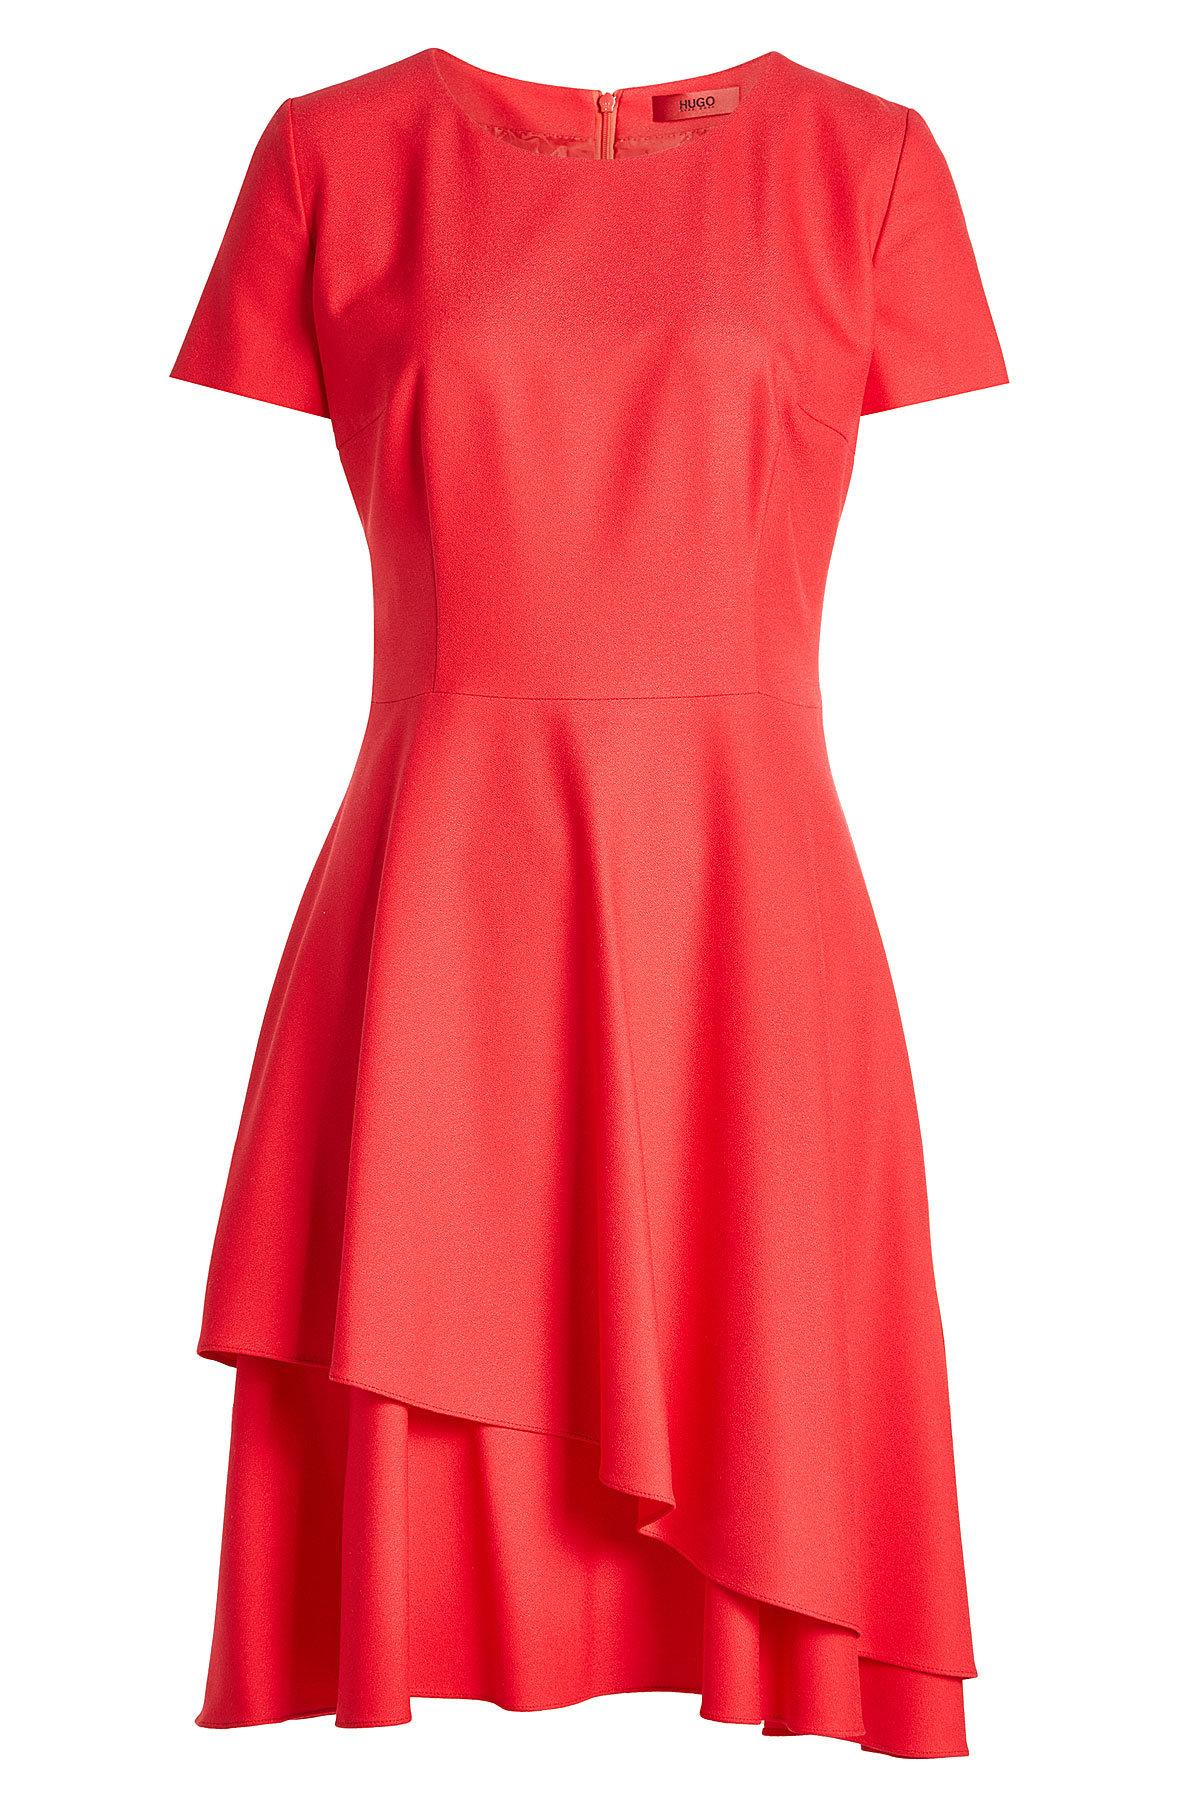 Hugo Dress With Ruffled Skirt In Red